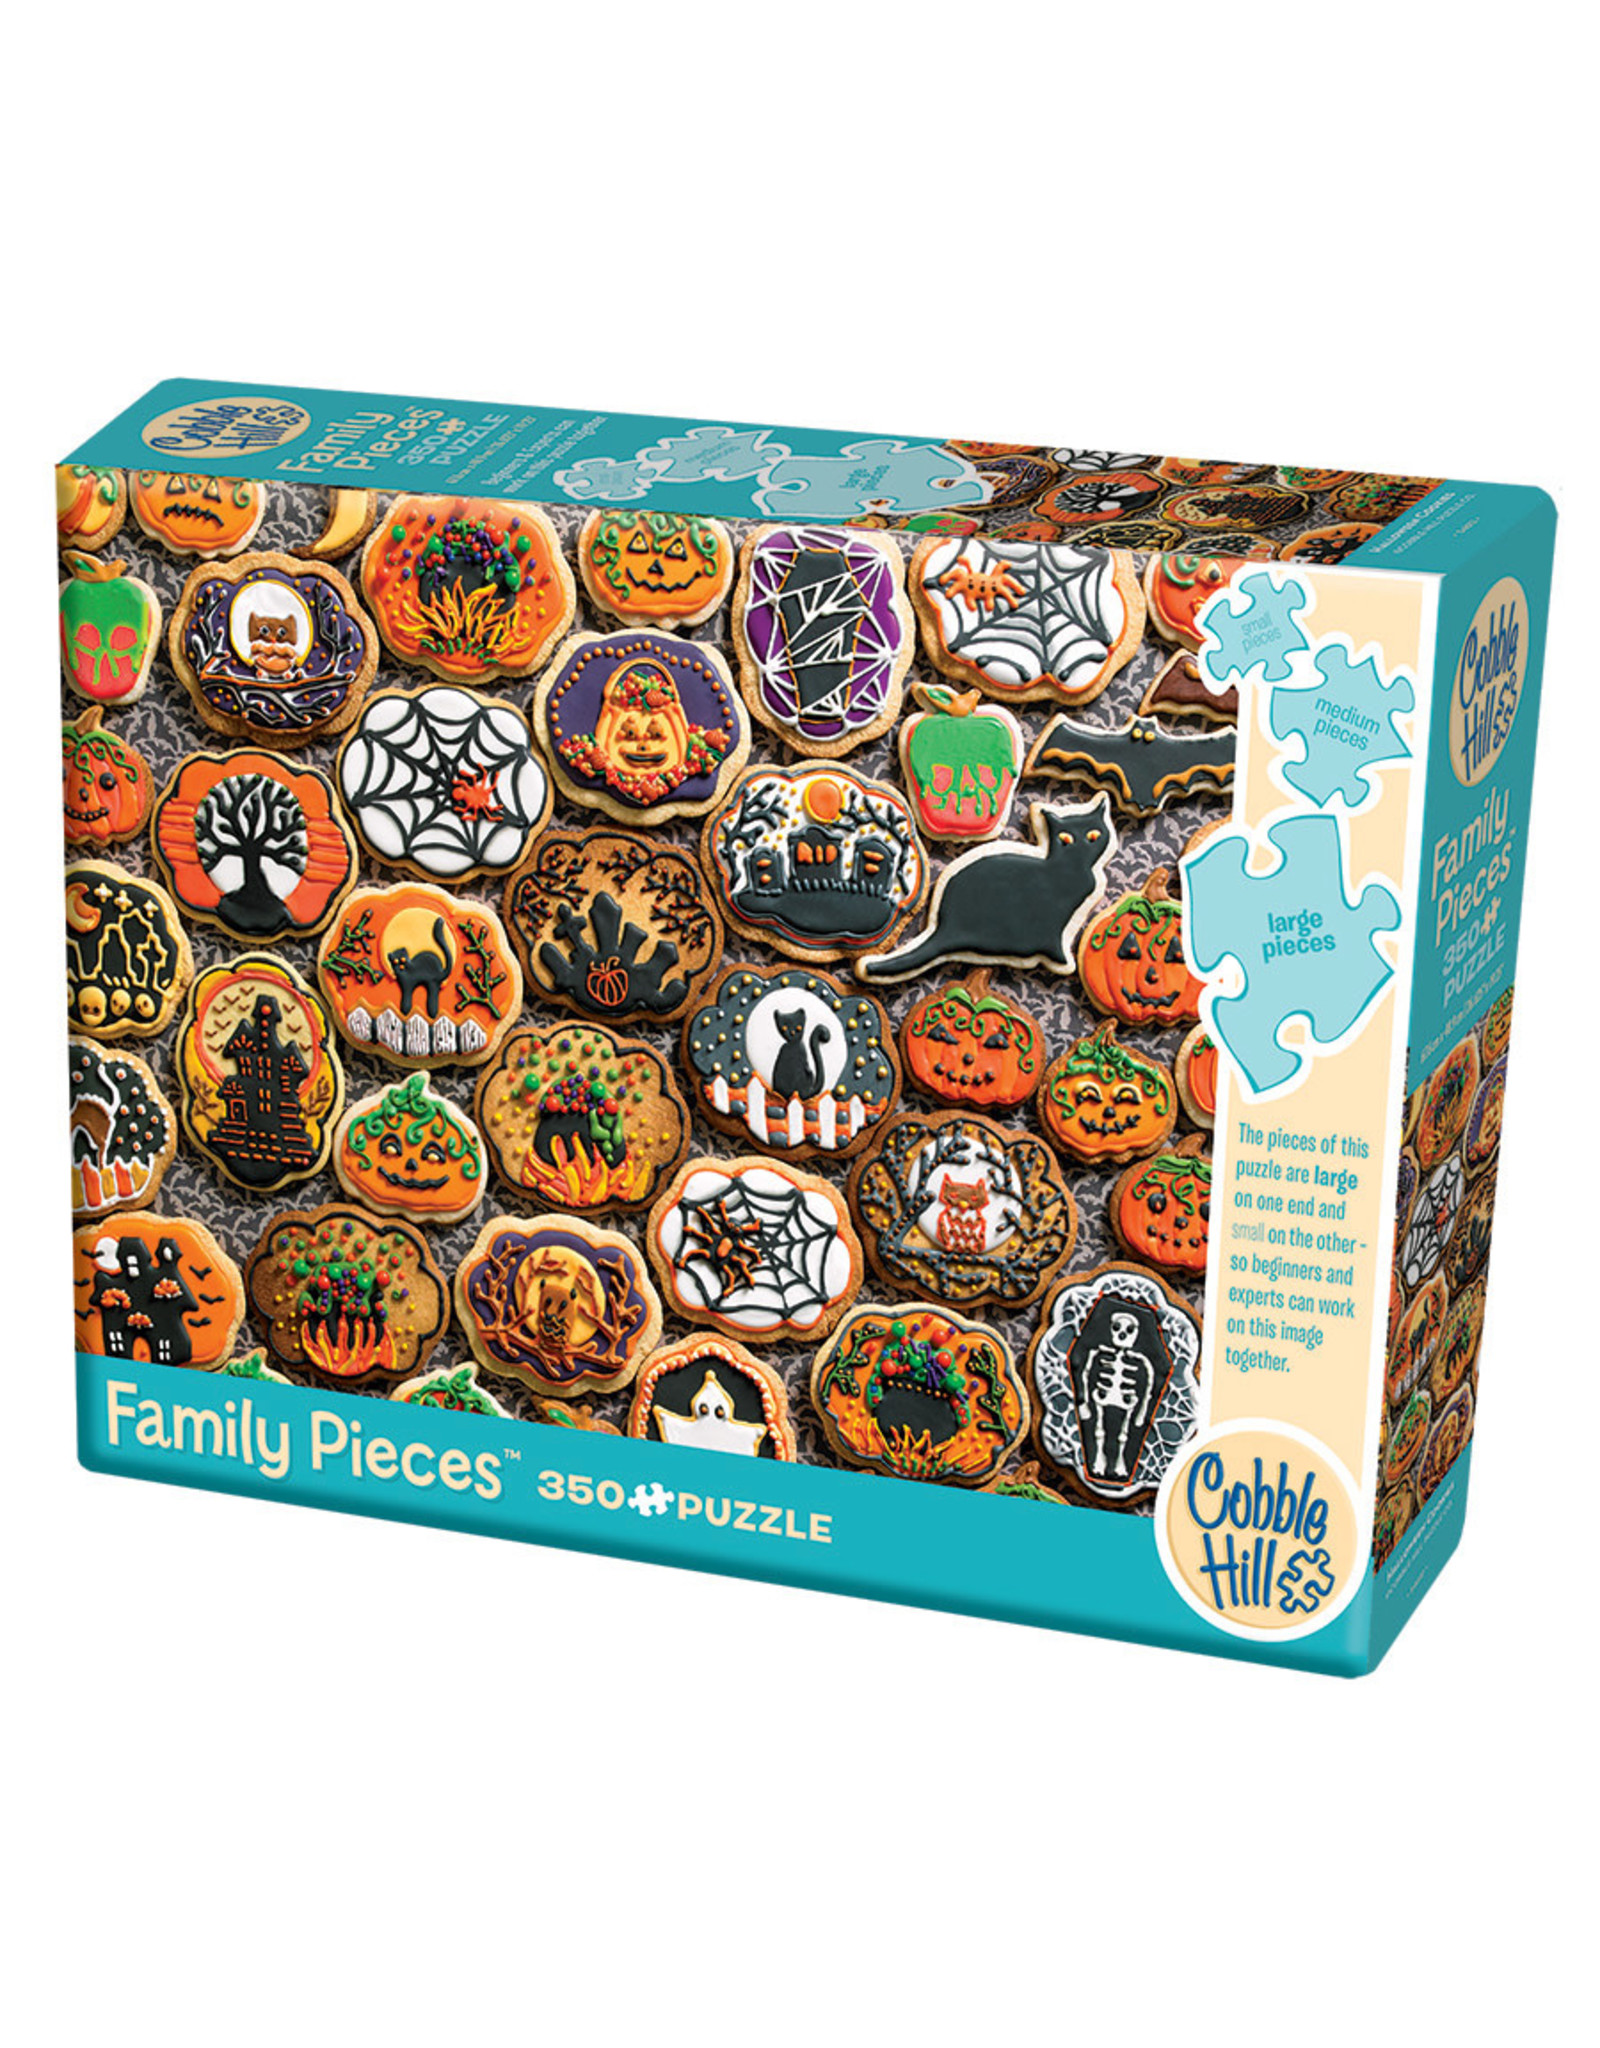 Cobble Hill Halloween Cookies 350 pc Family Puzzle